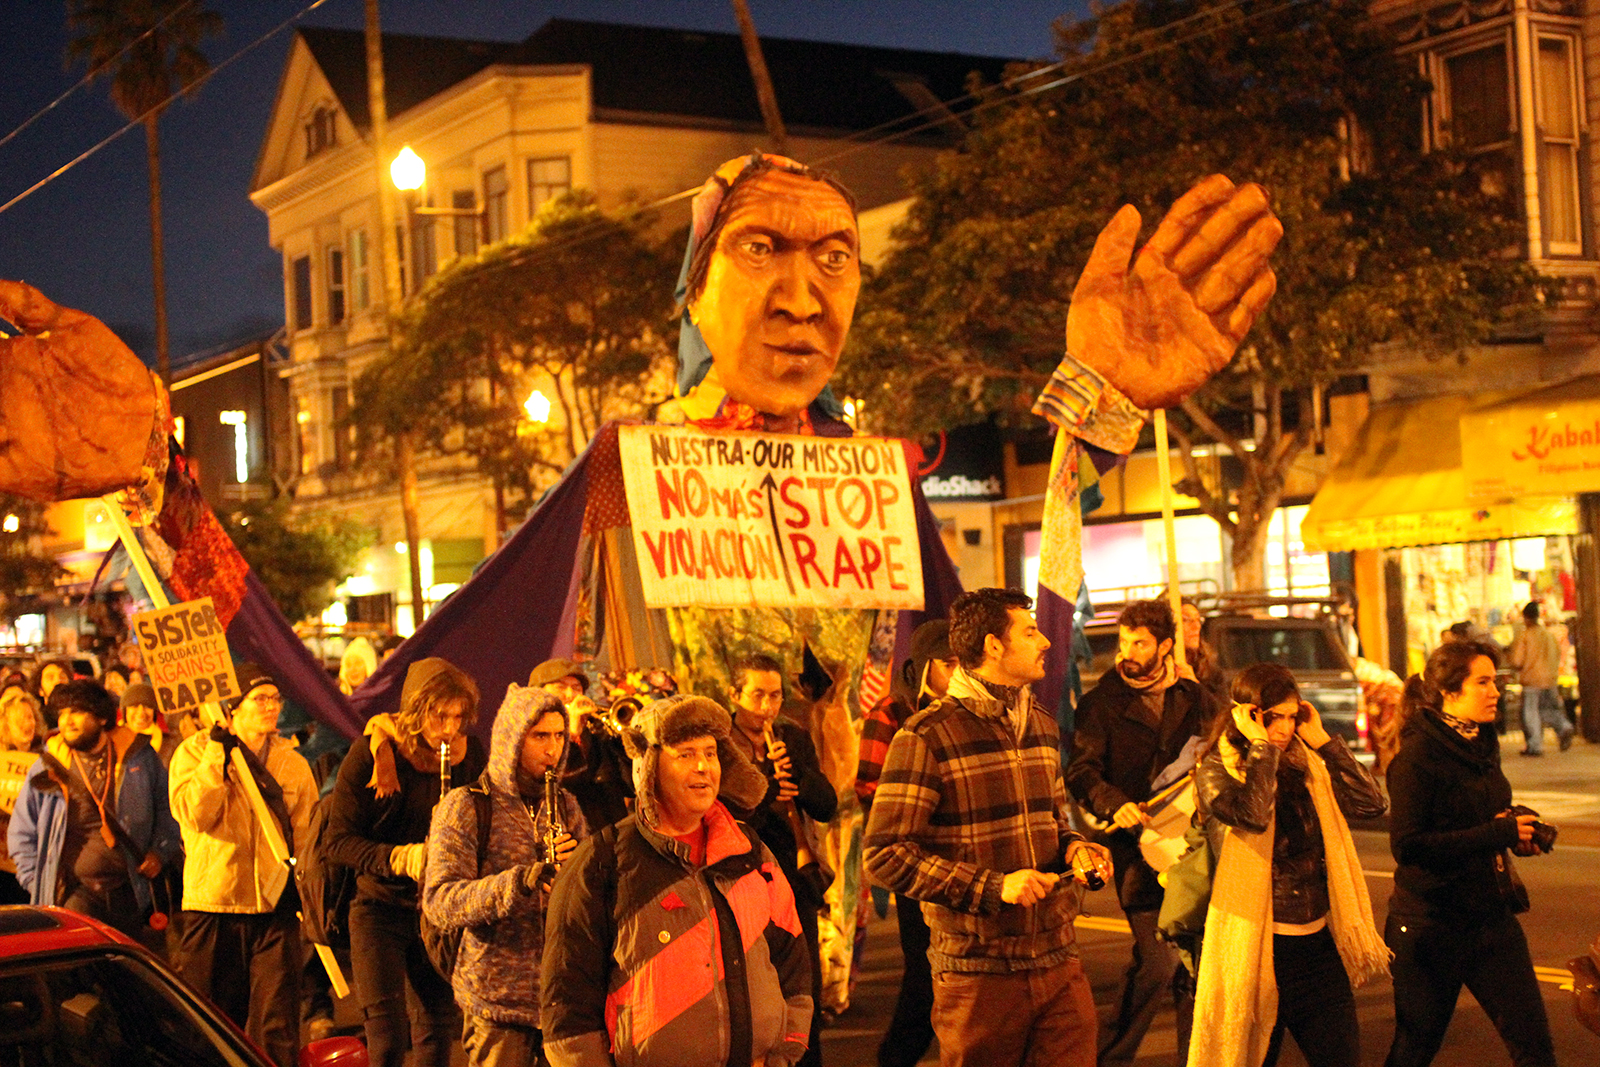 Mission Residents Protest Violence Against Women